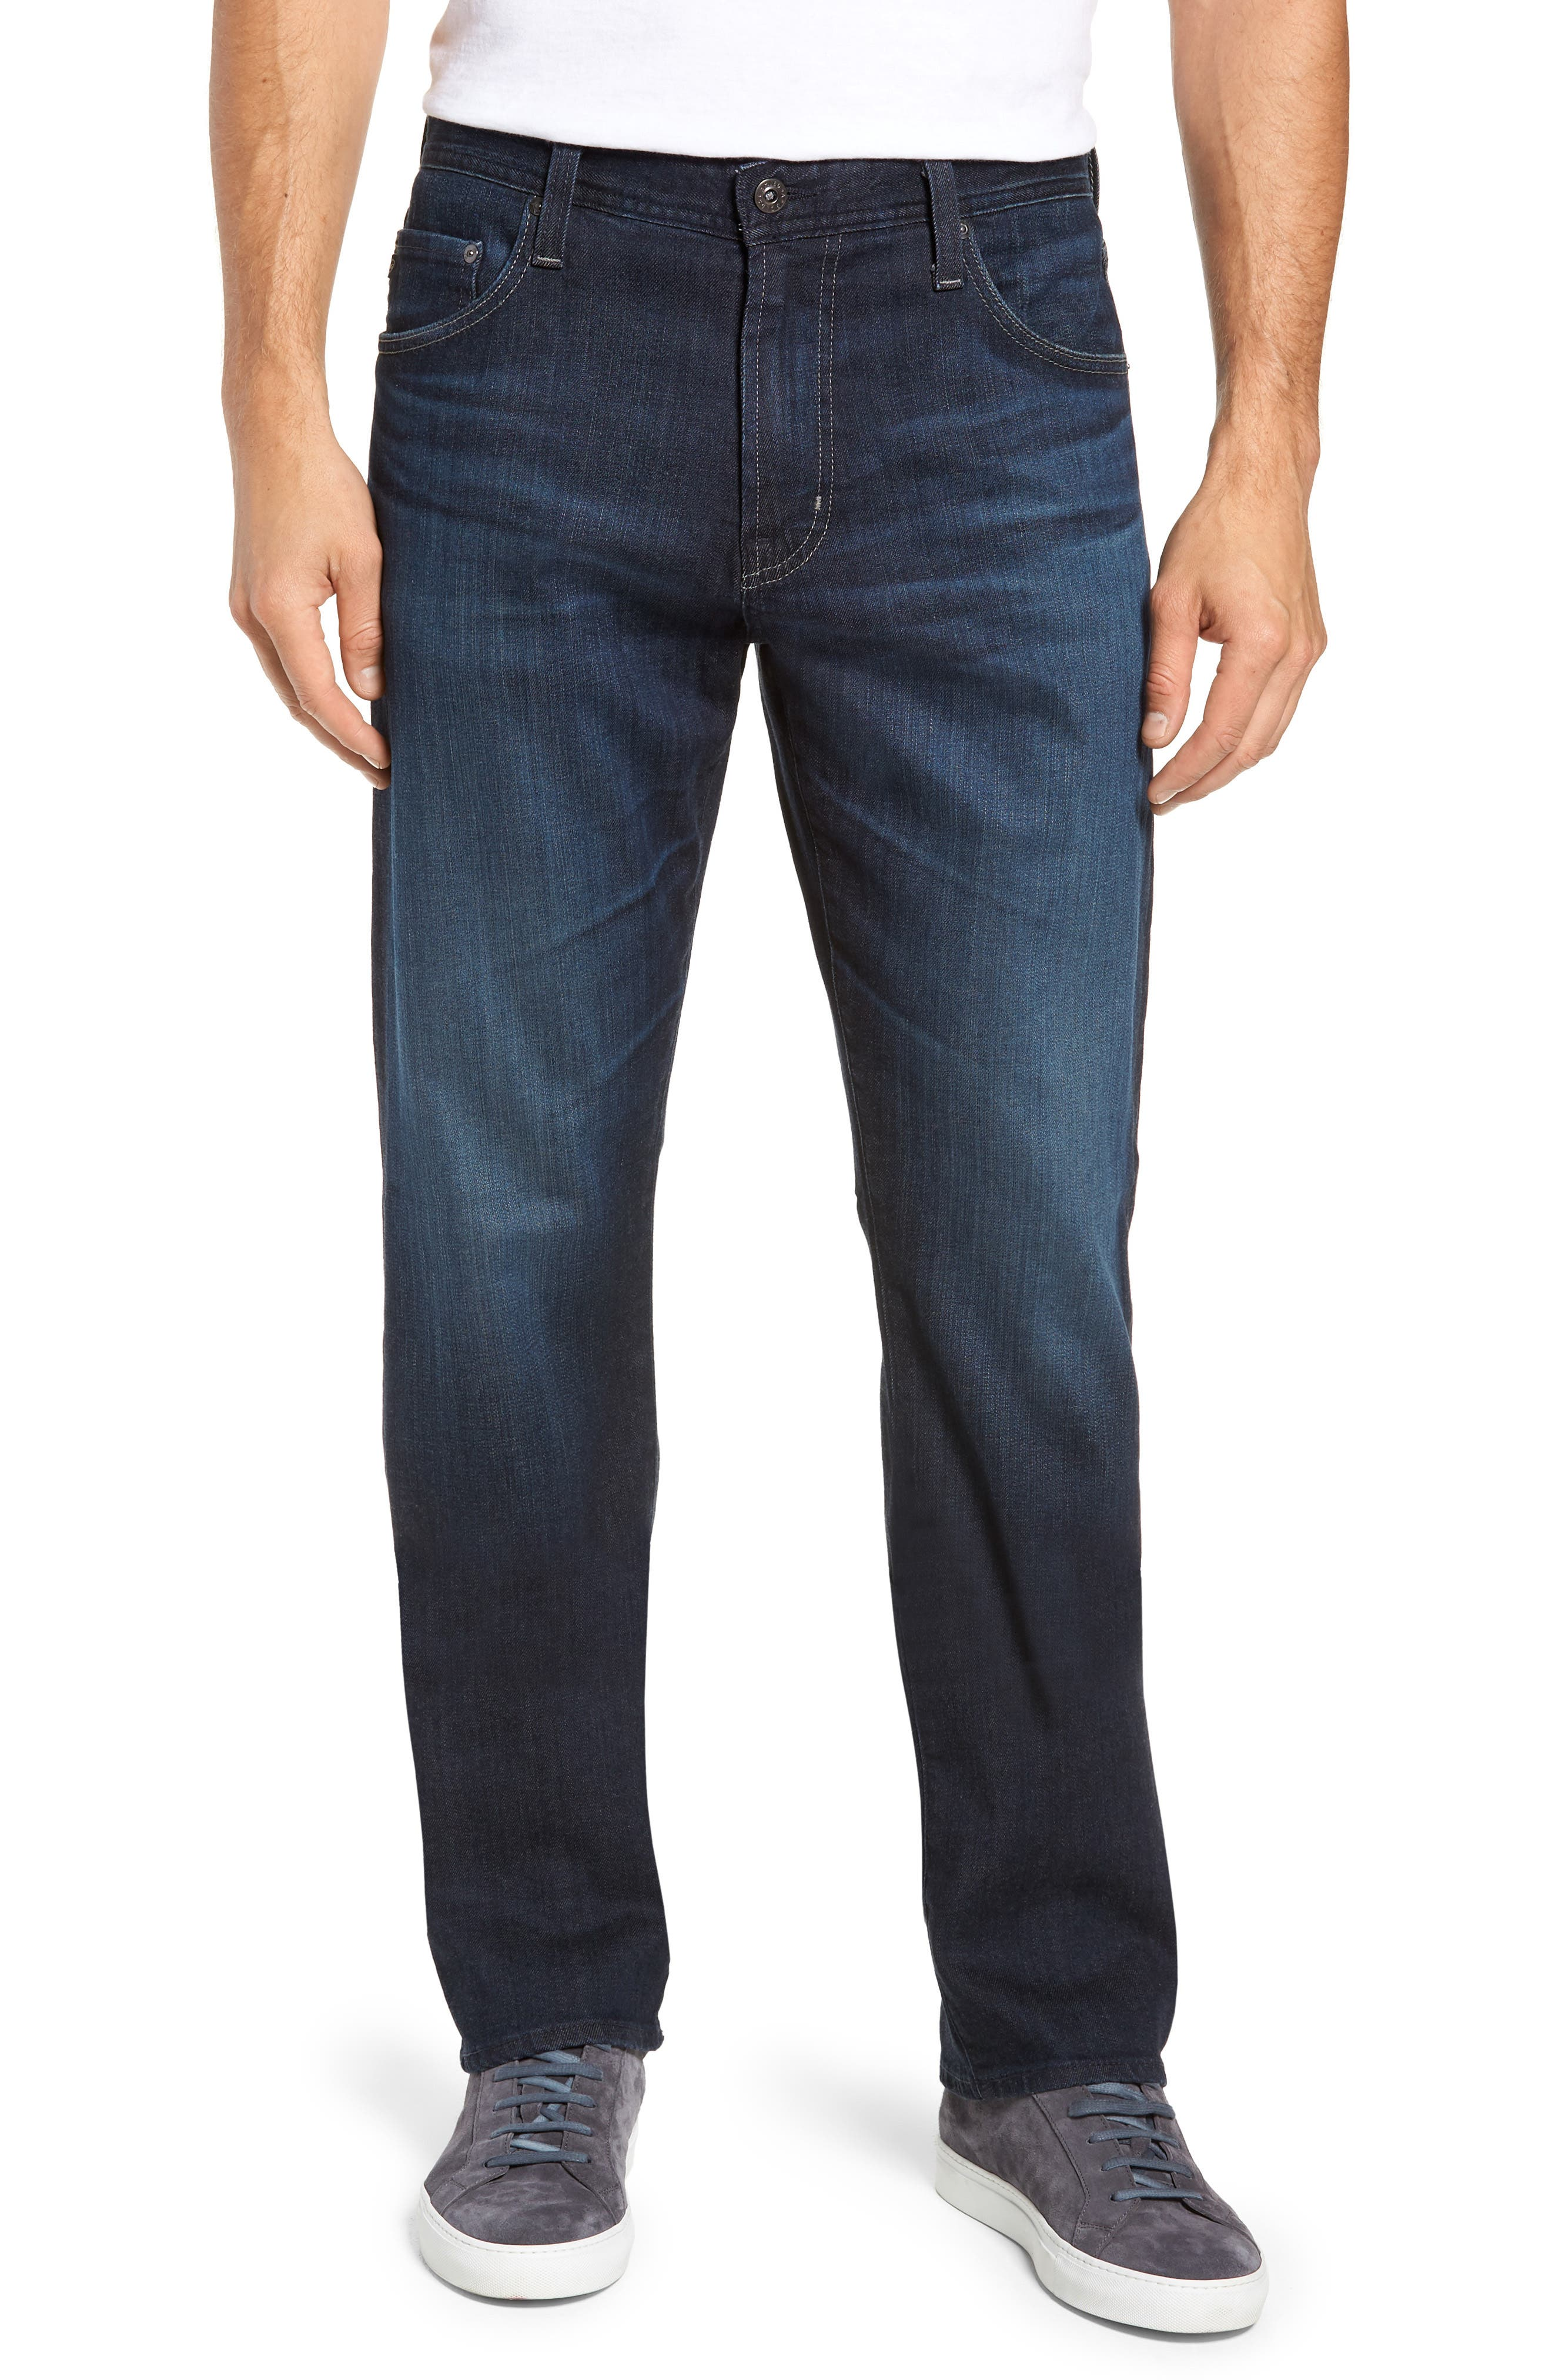 AG, Ives Straight Fit Jeans, Main thumbnail 1, color, PATTERSON